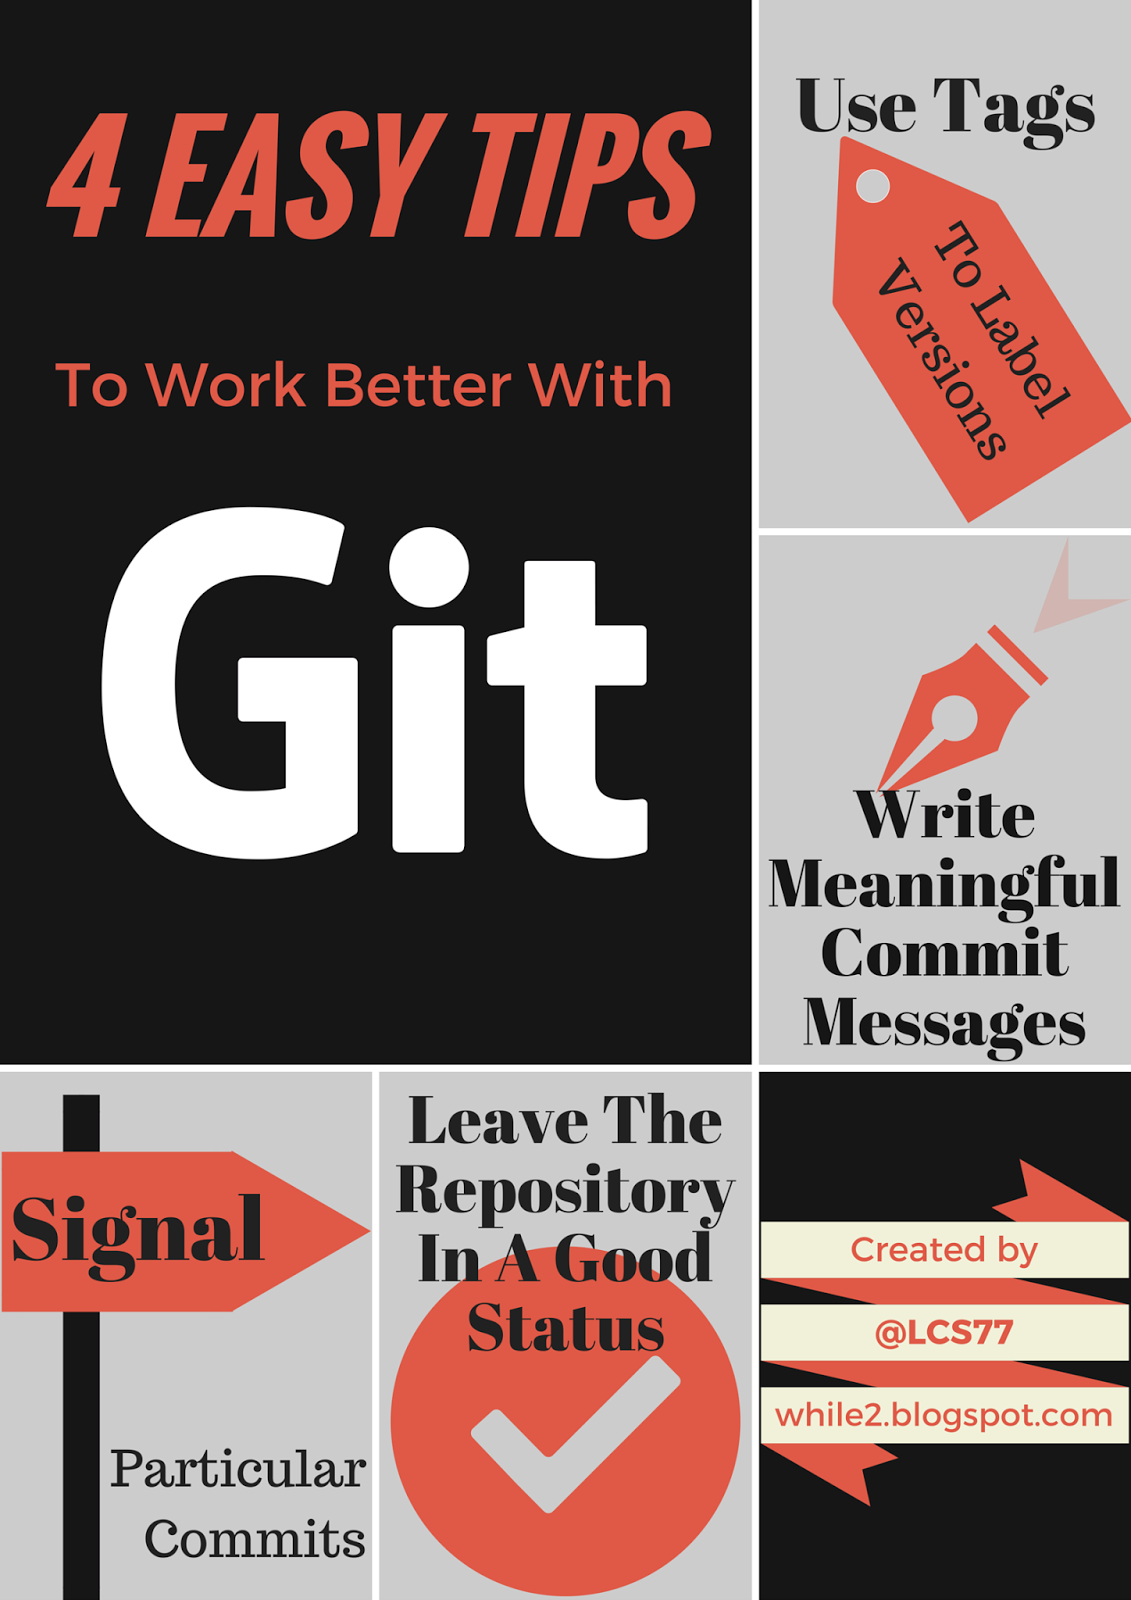 4 Easy Tips To Work Better With Git